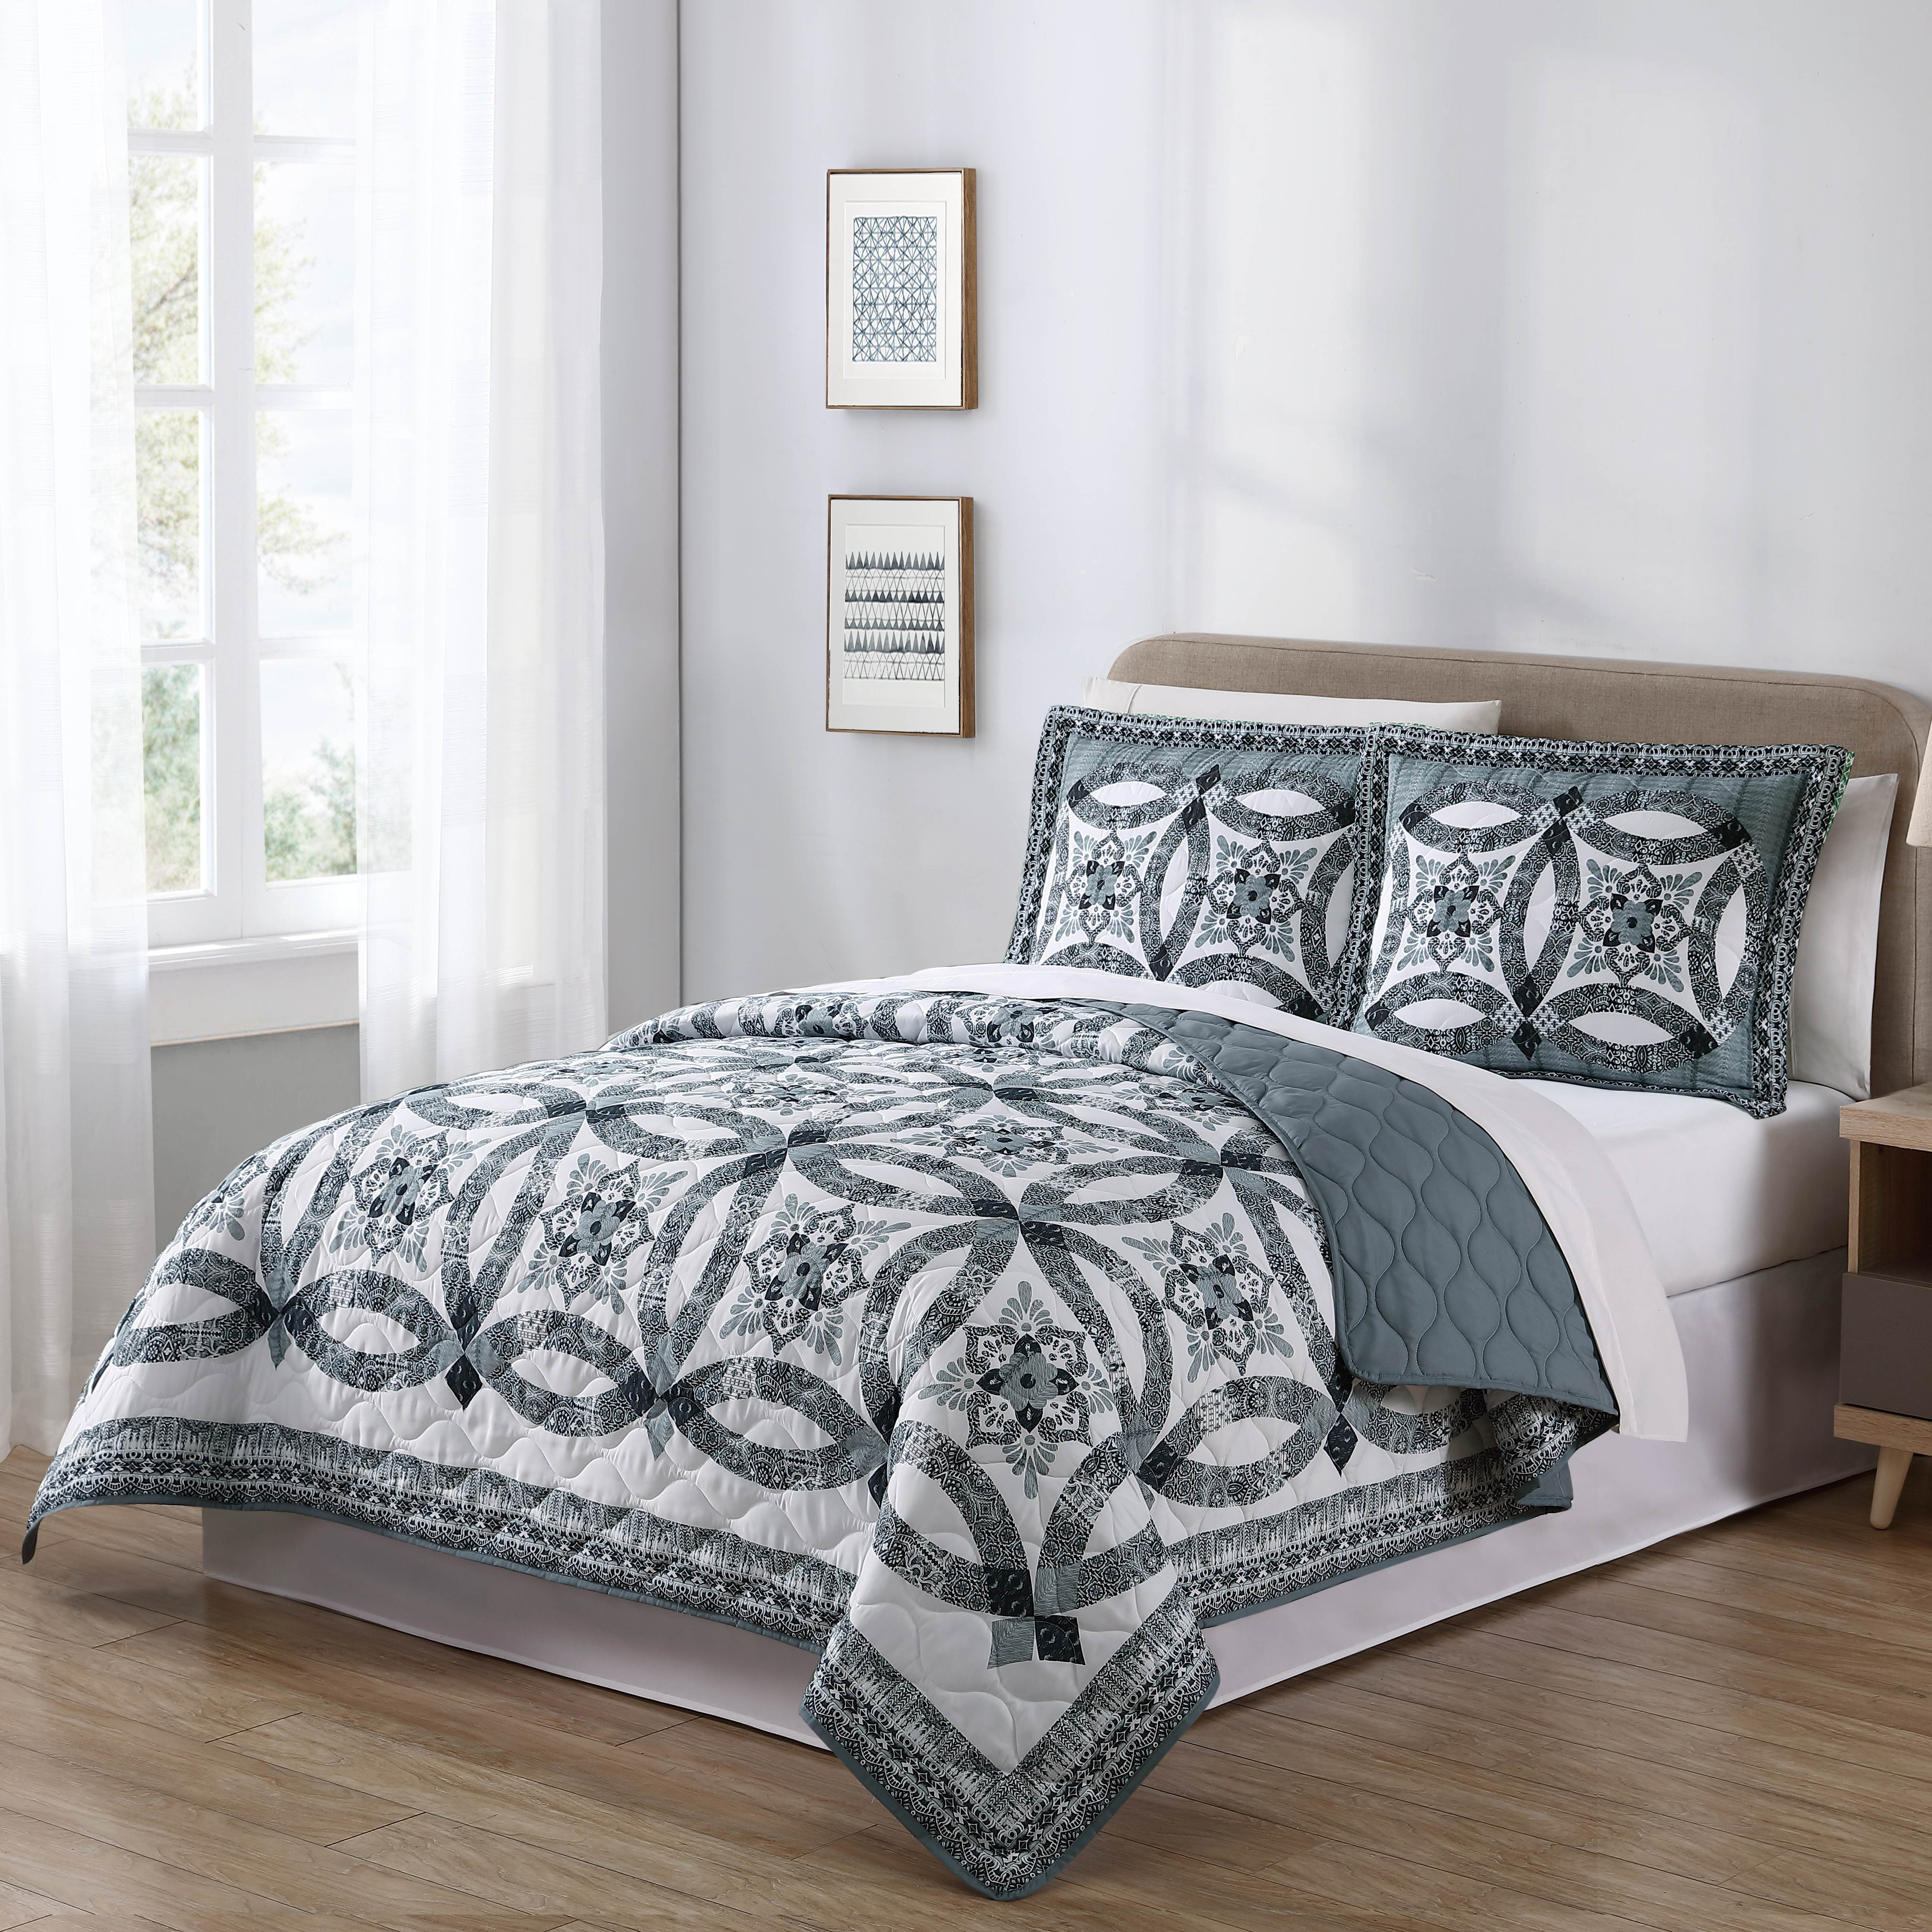 Mainstays Traditional Wedding Ring Patterned 3 Piece Full Queen Quilt Set, Gray by Keeco